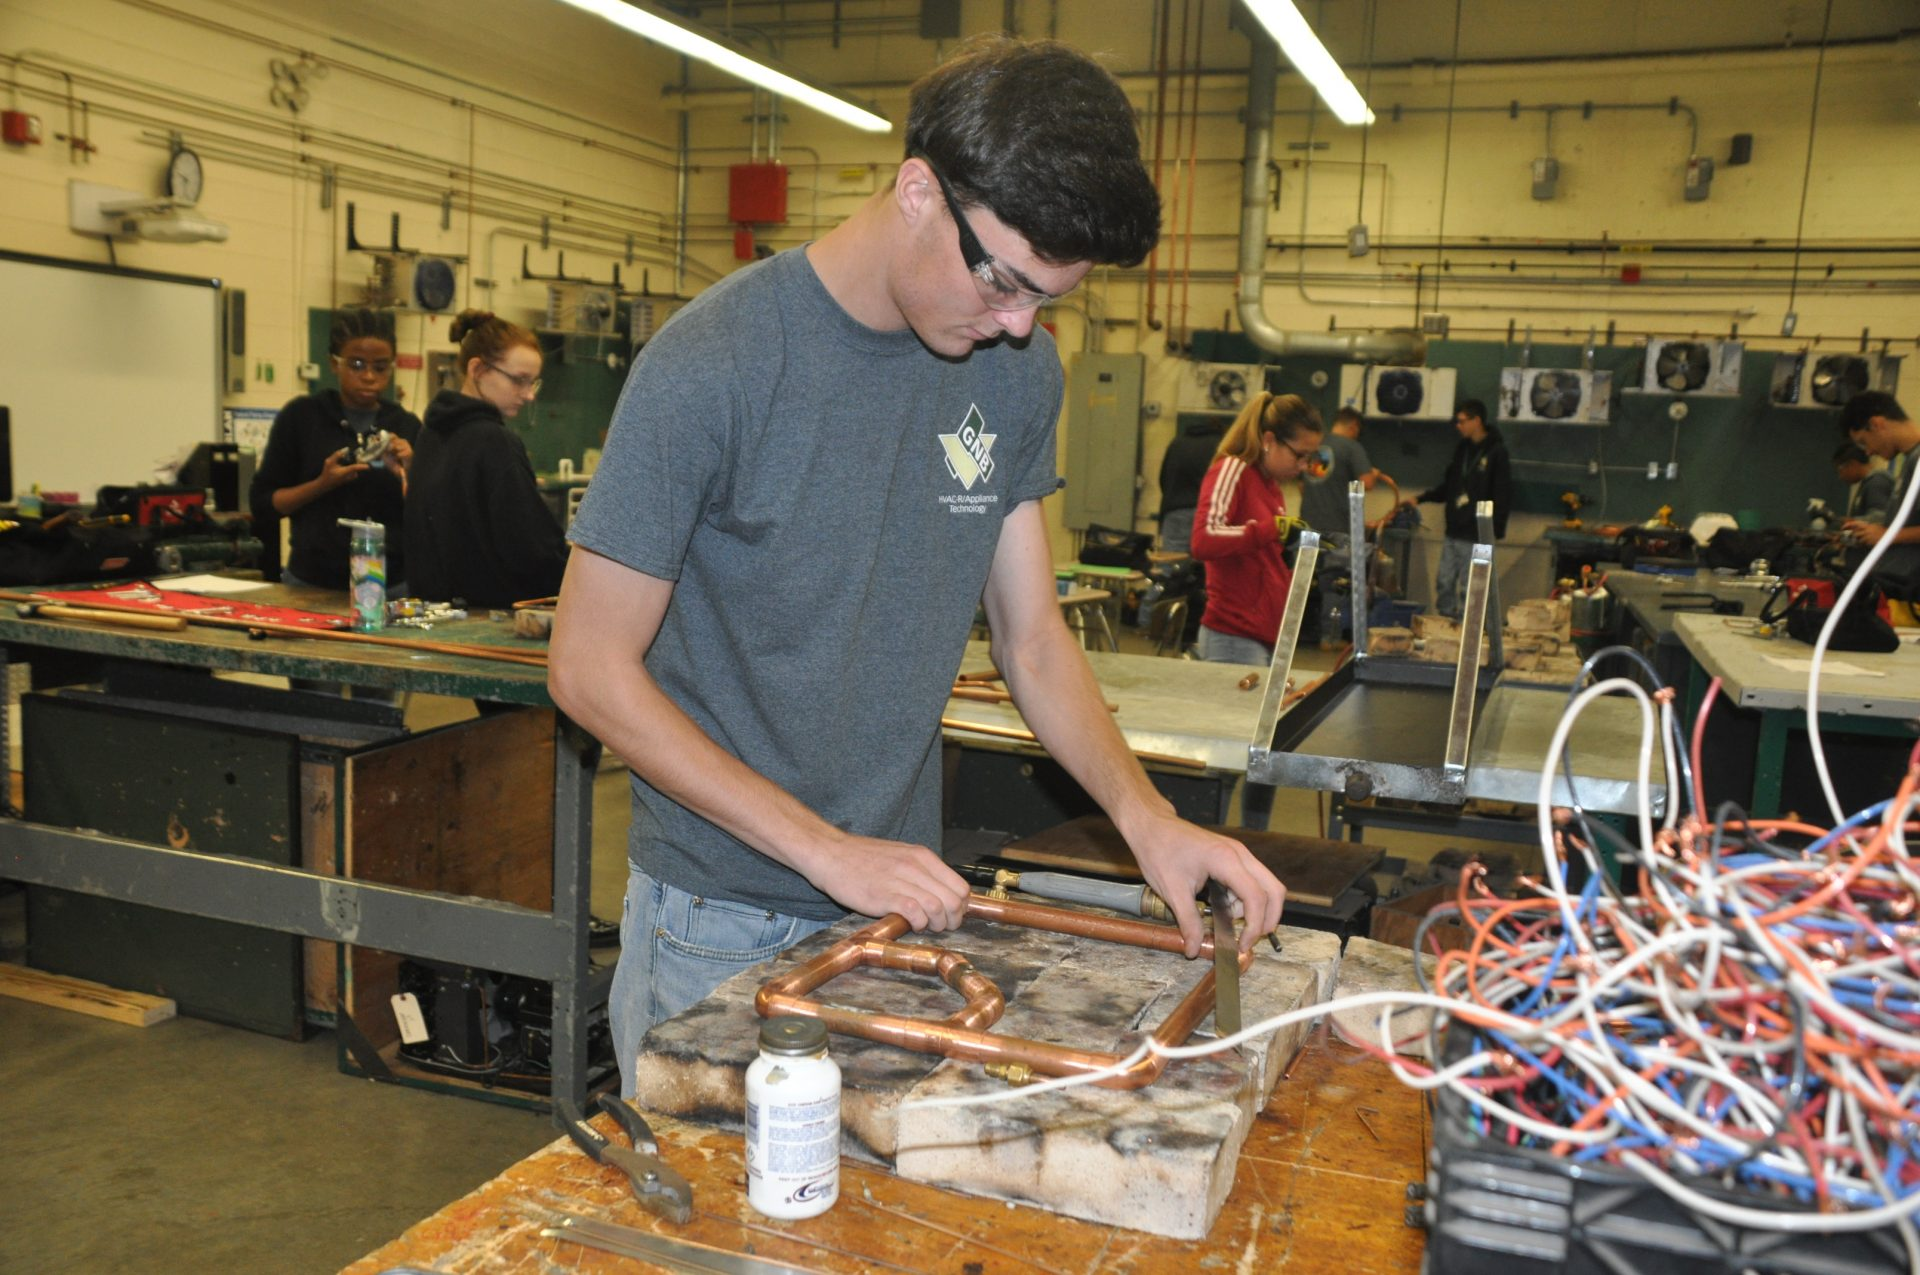 HVAC student working at table